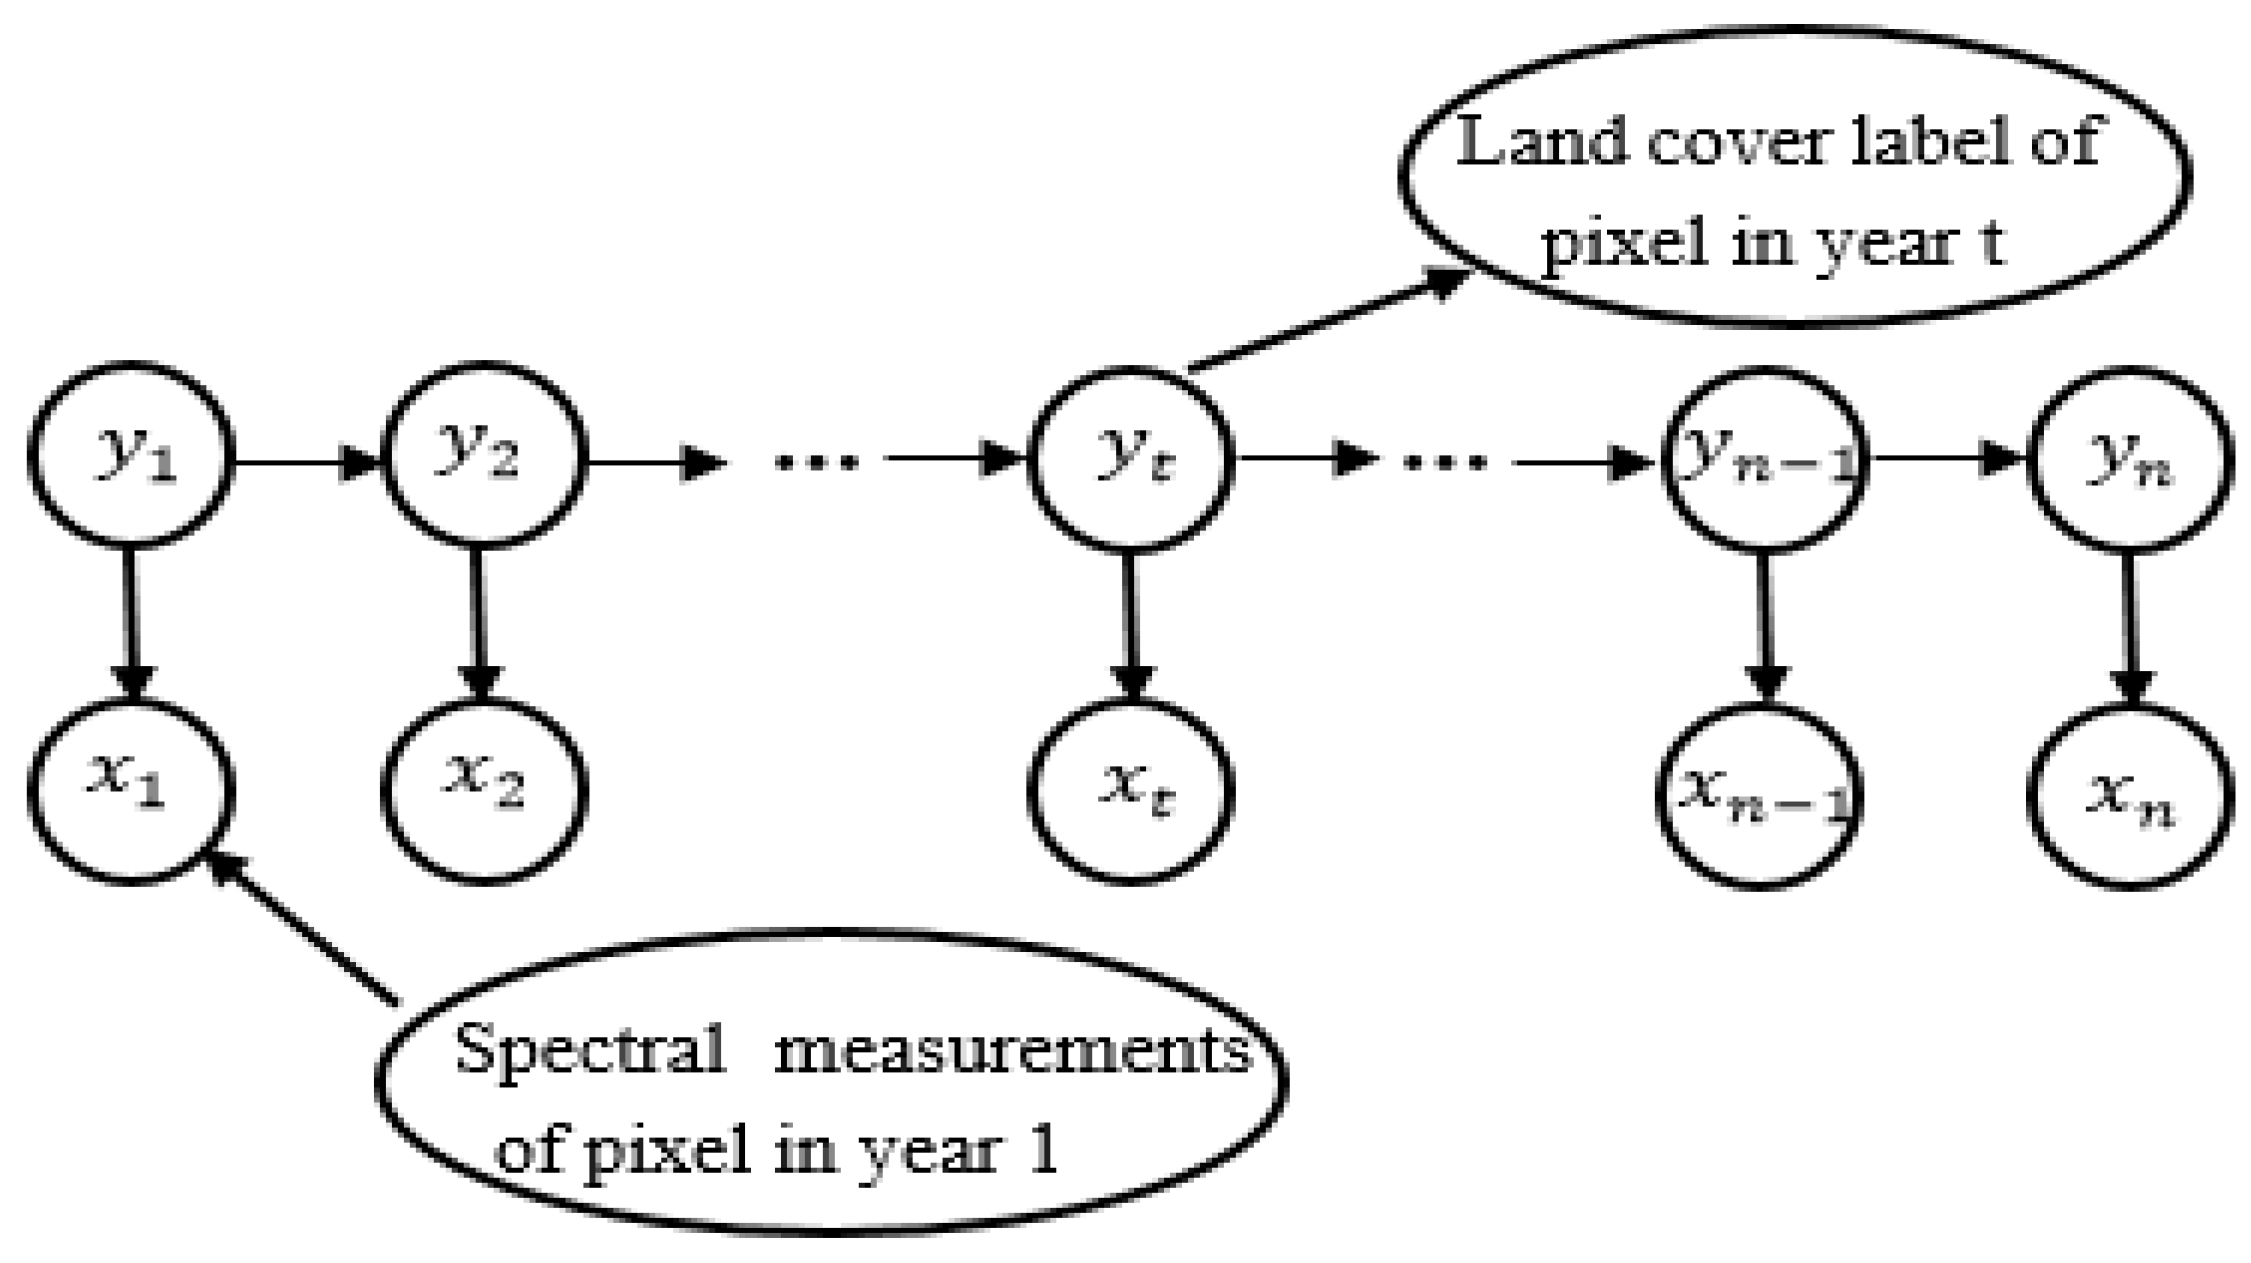 modelling of turns using hidden markov model Prediction of financial time series with hidden markov models by yingjian zhang beng shandong university, china, 2001 a thesis submitted in partial fulfillment.